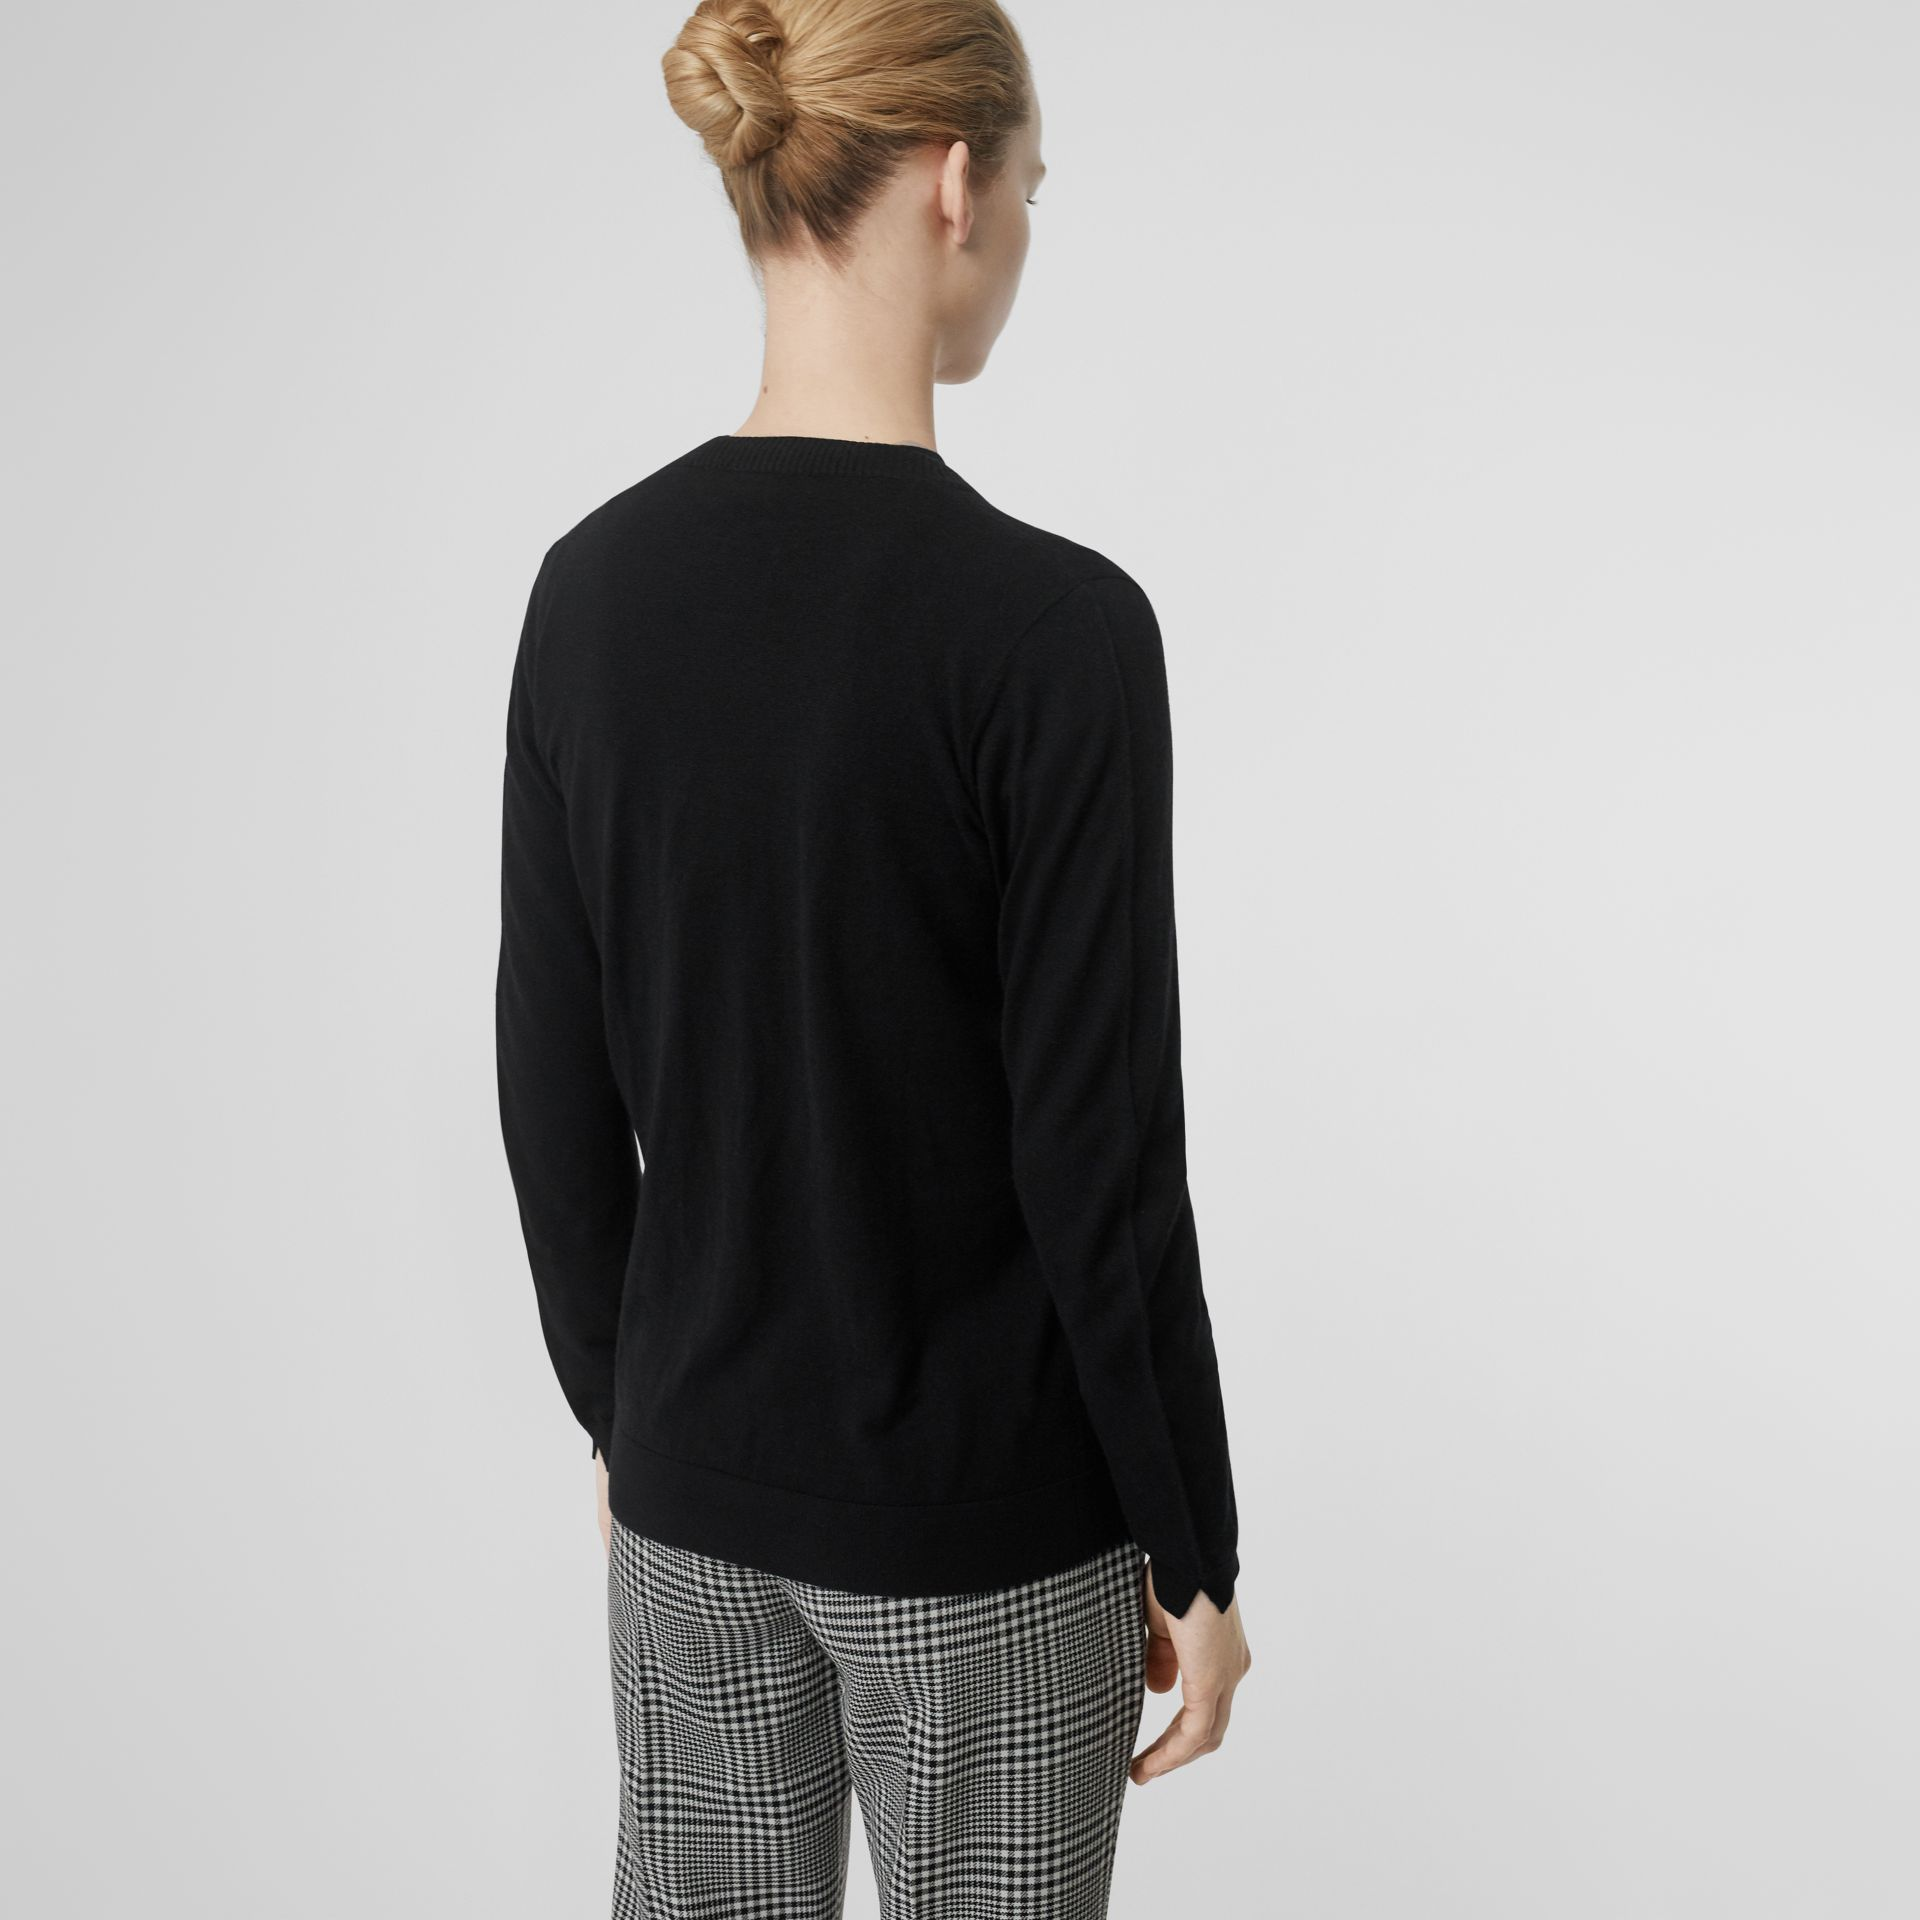 Rib Knit Cashmere Cardigan in Black - Women | Burberry United States - gallery image 2